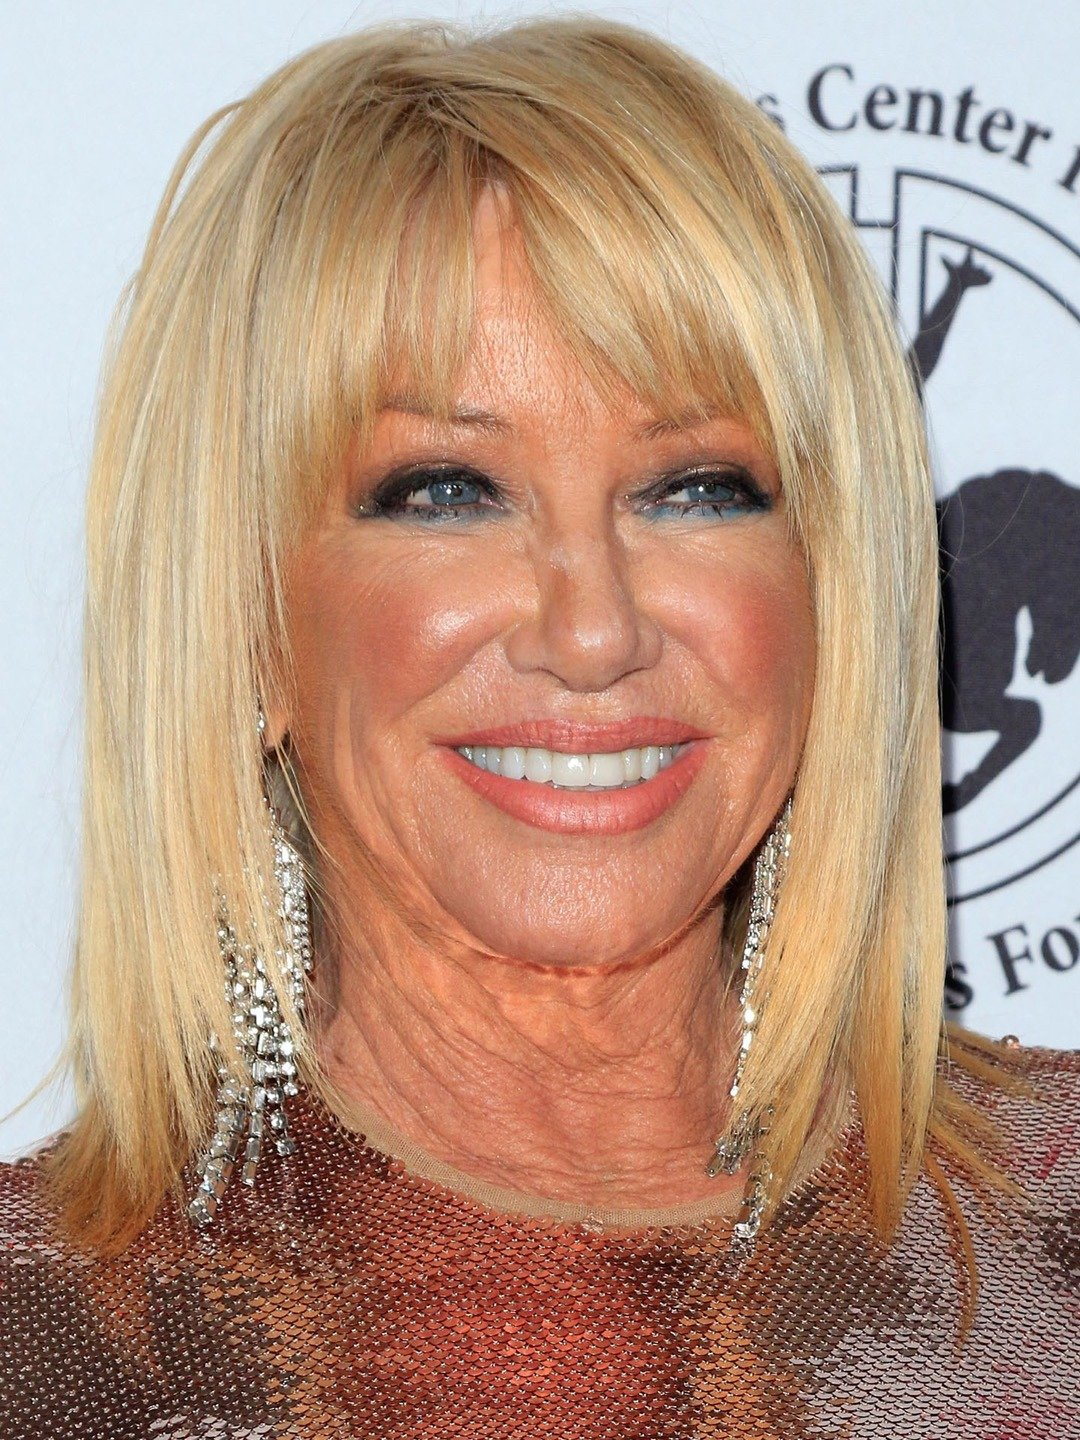 Image result for Suzanne Somers